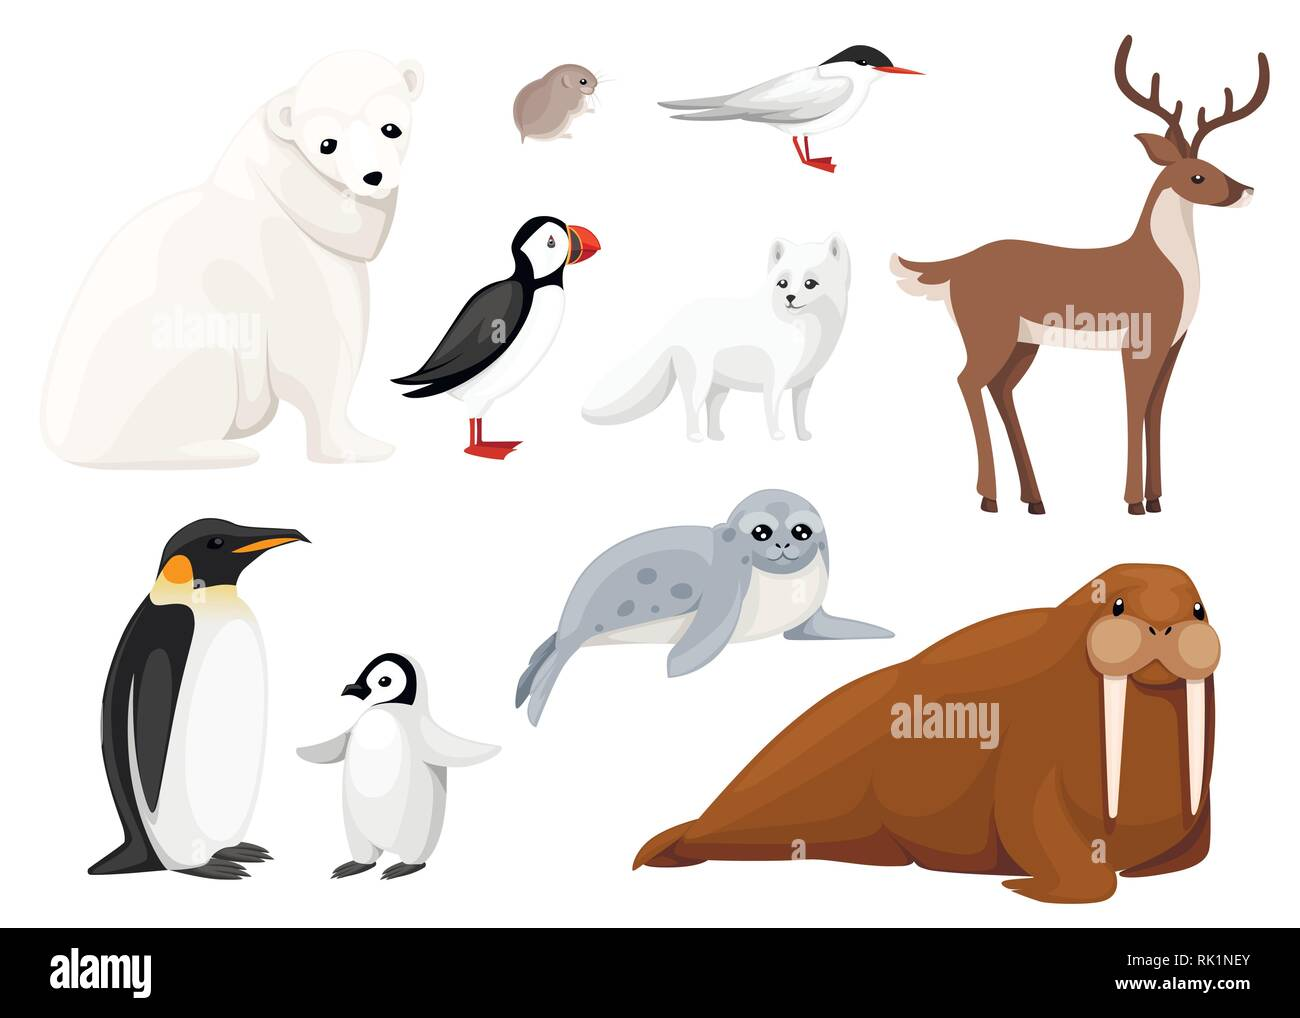 Set of arctic animals icon. Birds and mammals. Arctic animal, cartoon flat design. Vector illustration isolated on white background. - Stock Vector